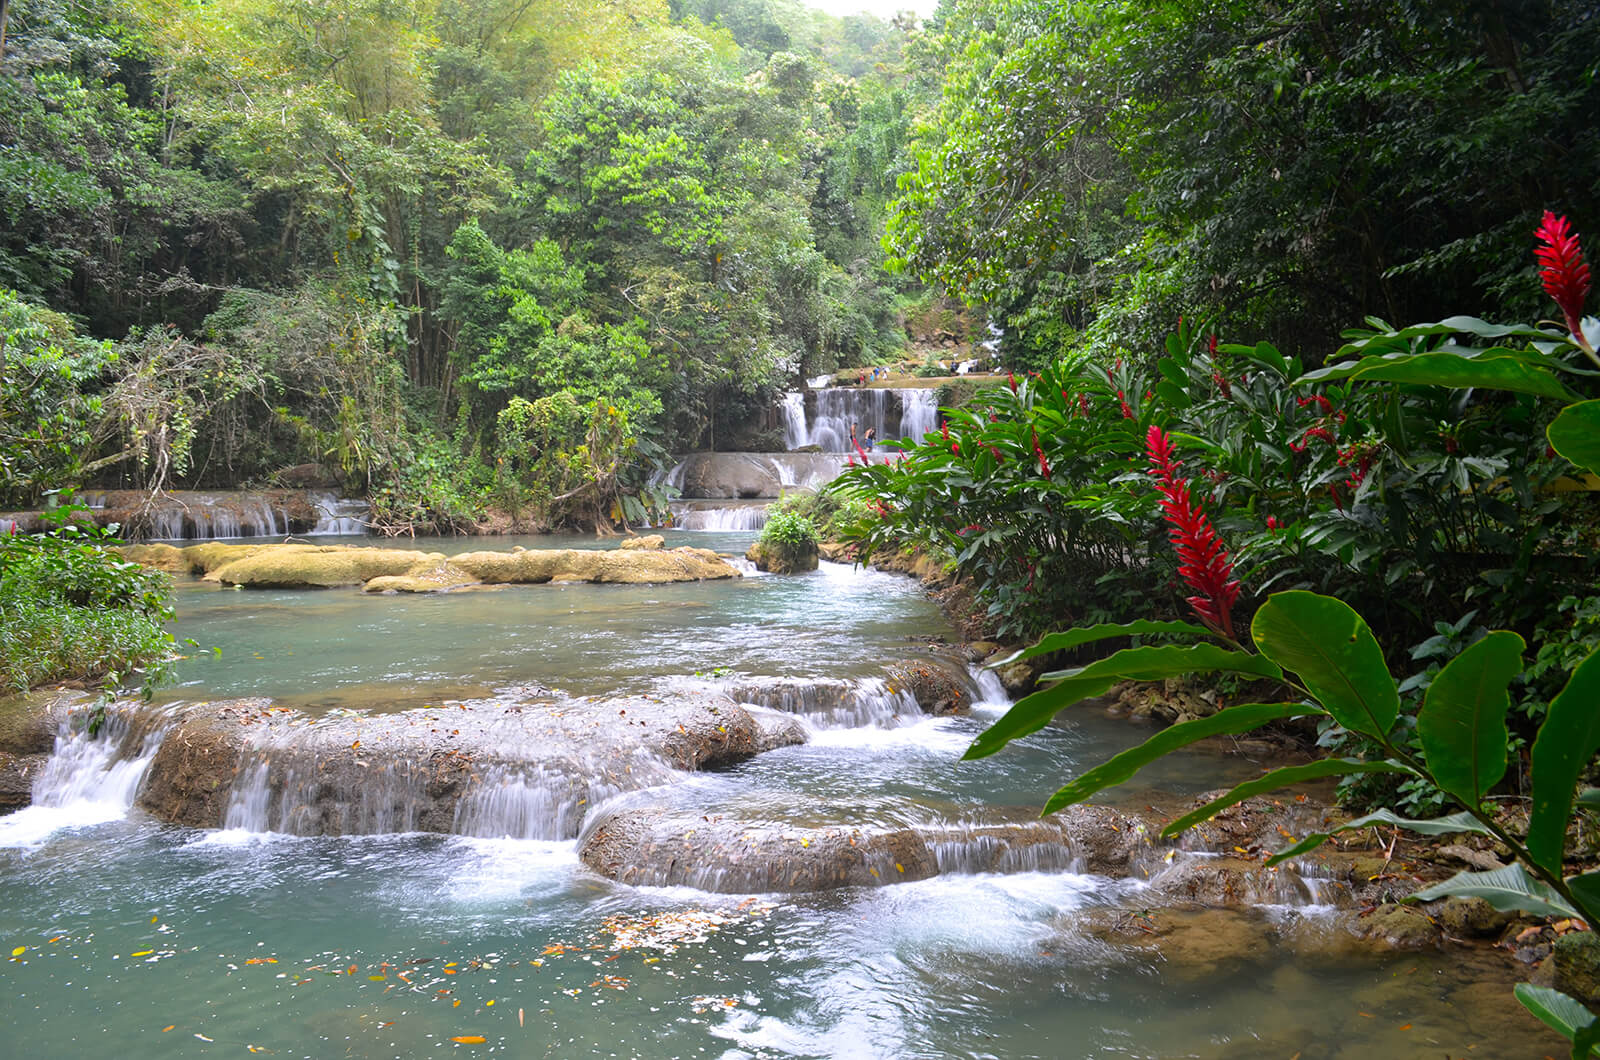 The seven-tiered YS Falls in St Elizabeth are a must-see if you visit Jamaica